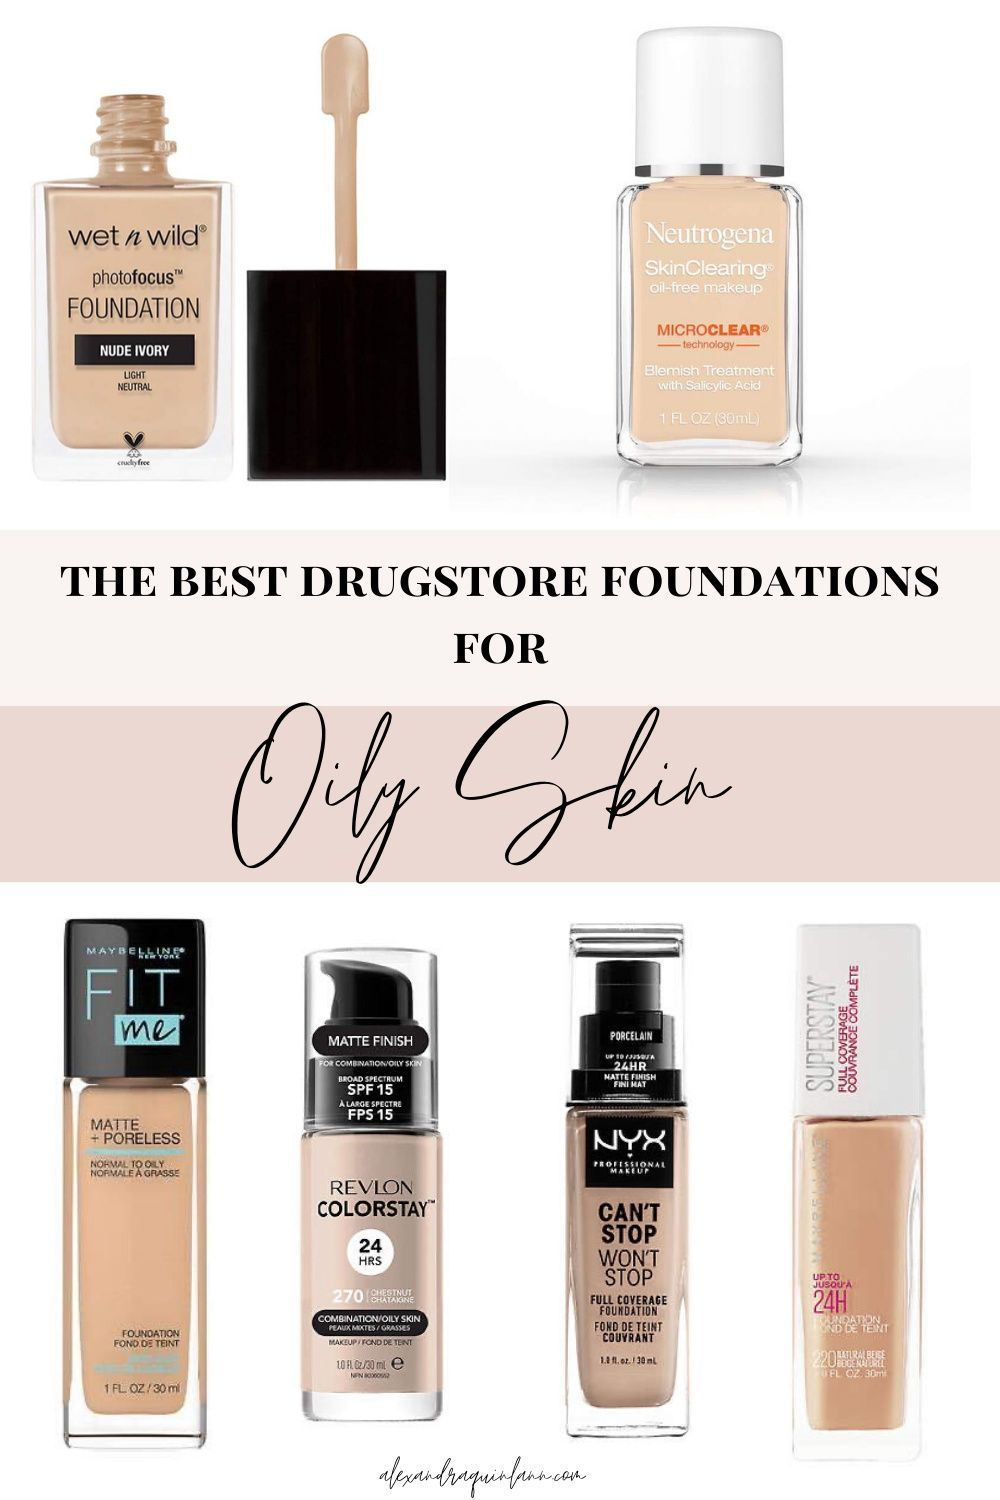 The Best Drugstore Foundations For Oily Skin in 2020